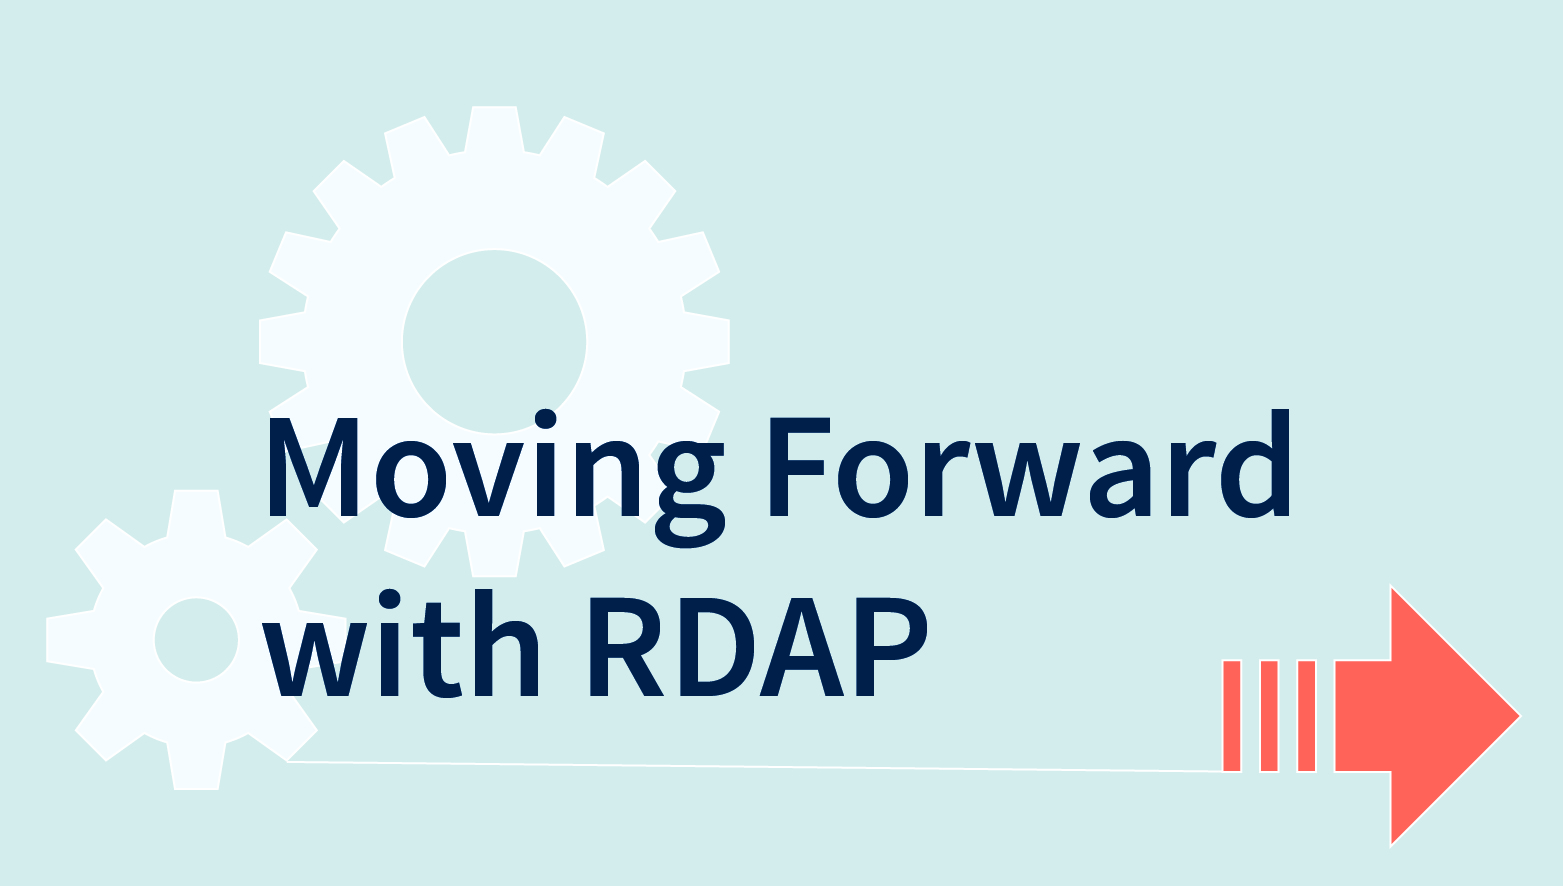 Moving forward rdap 1563x886 04sep18 en